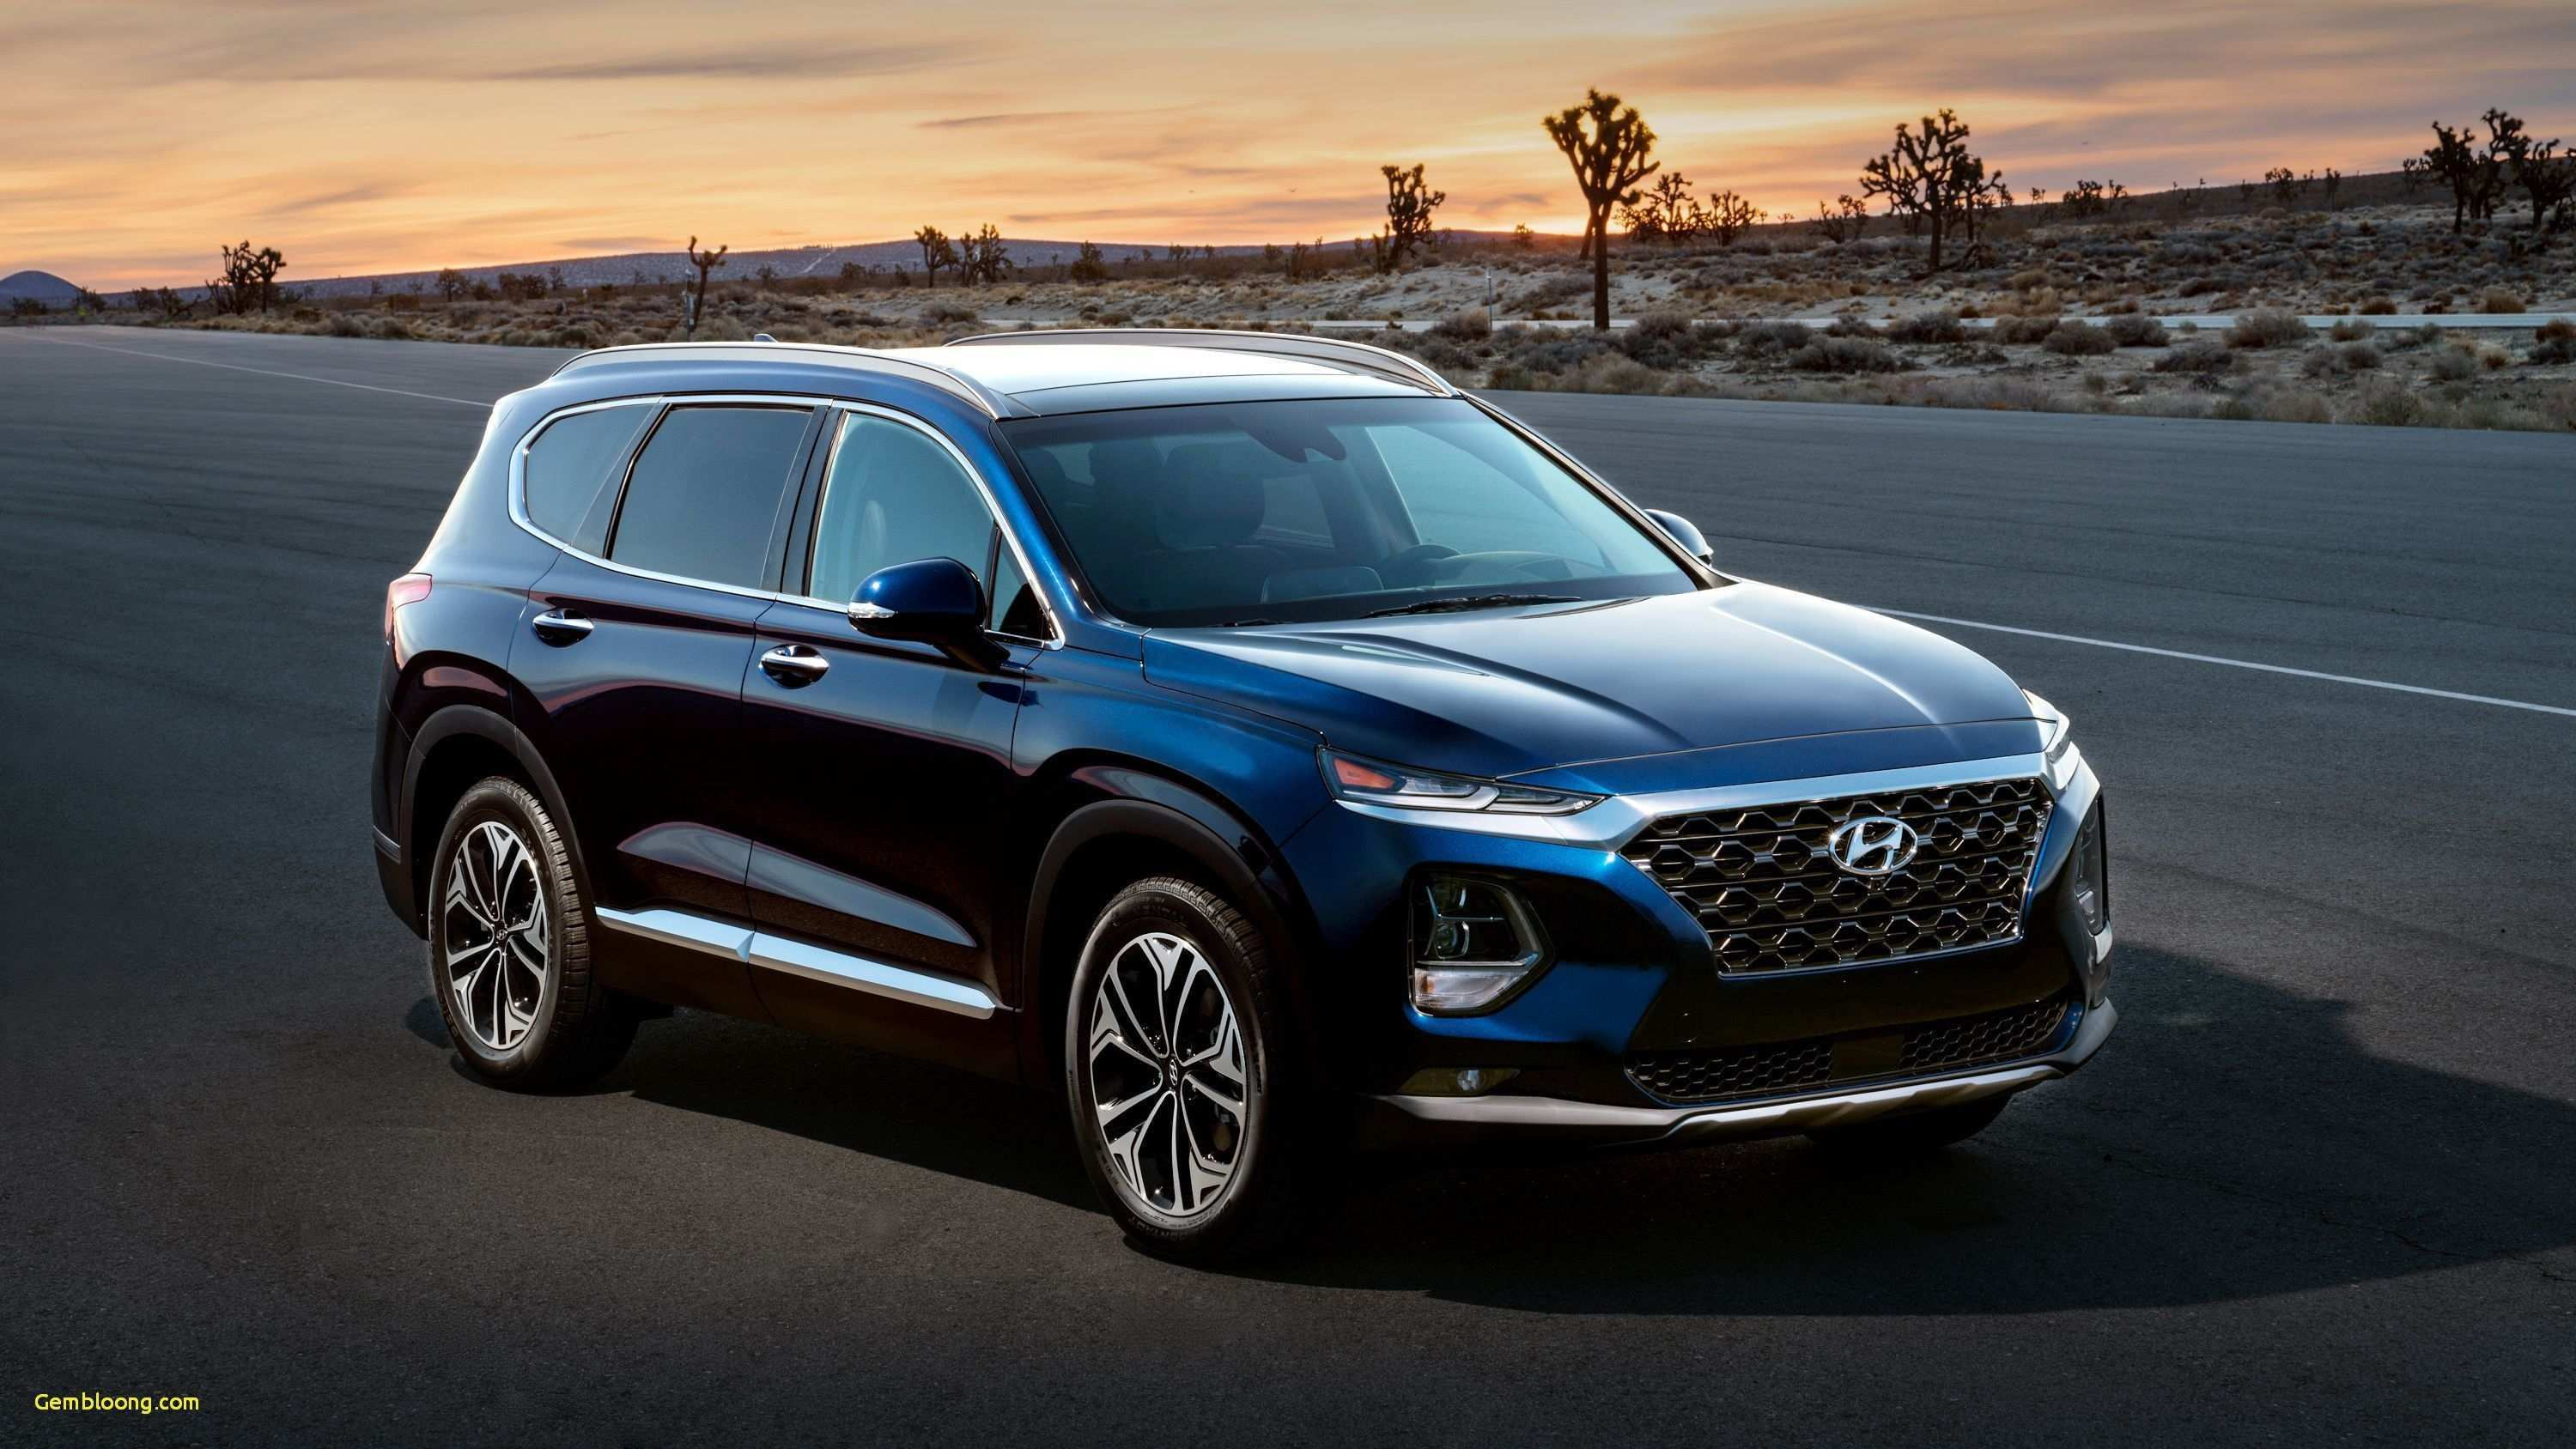 94 New 2019 Kia Mohave Picture for 2019 Kia Mohave